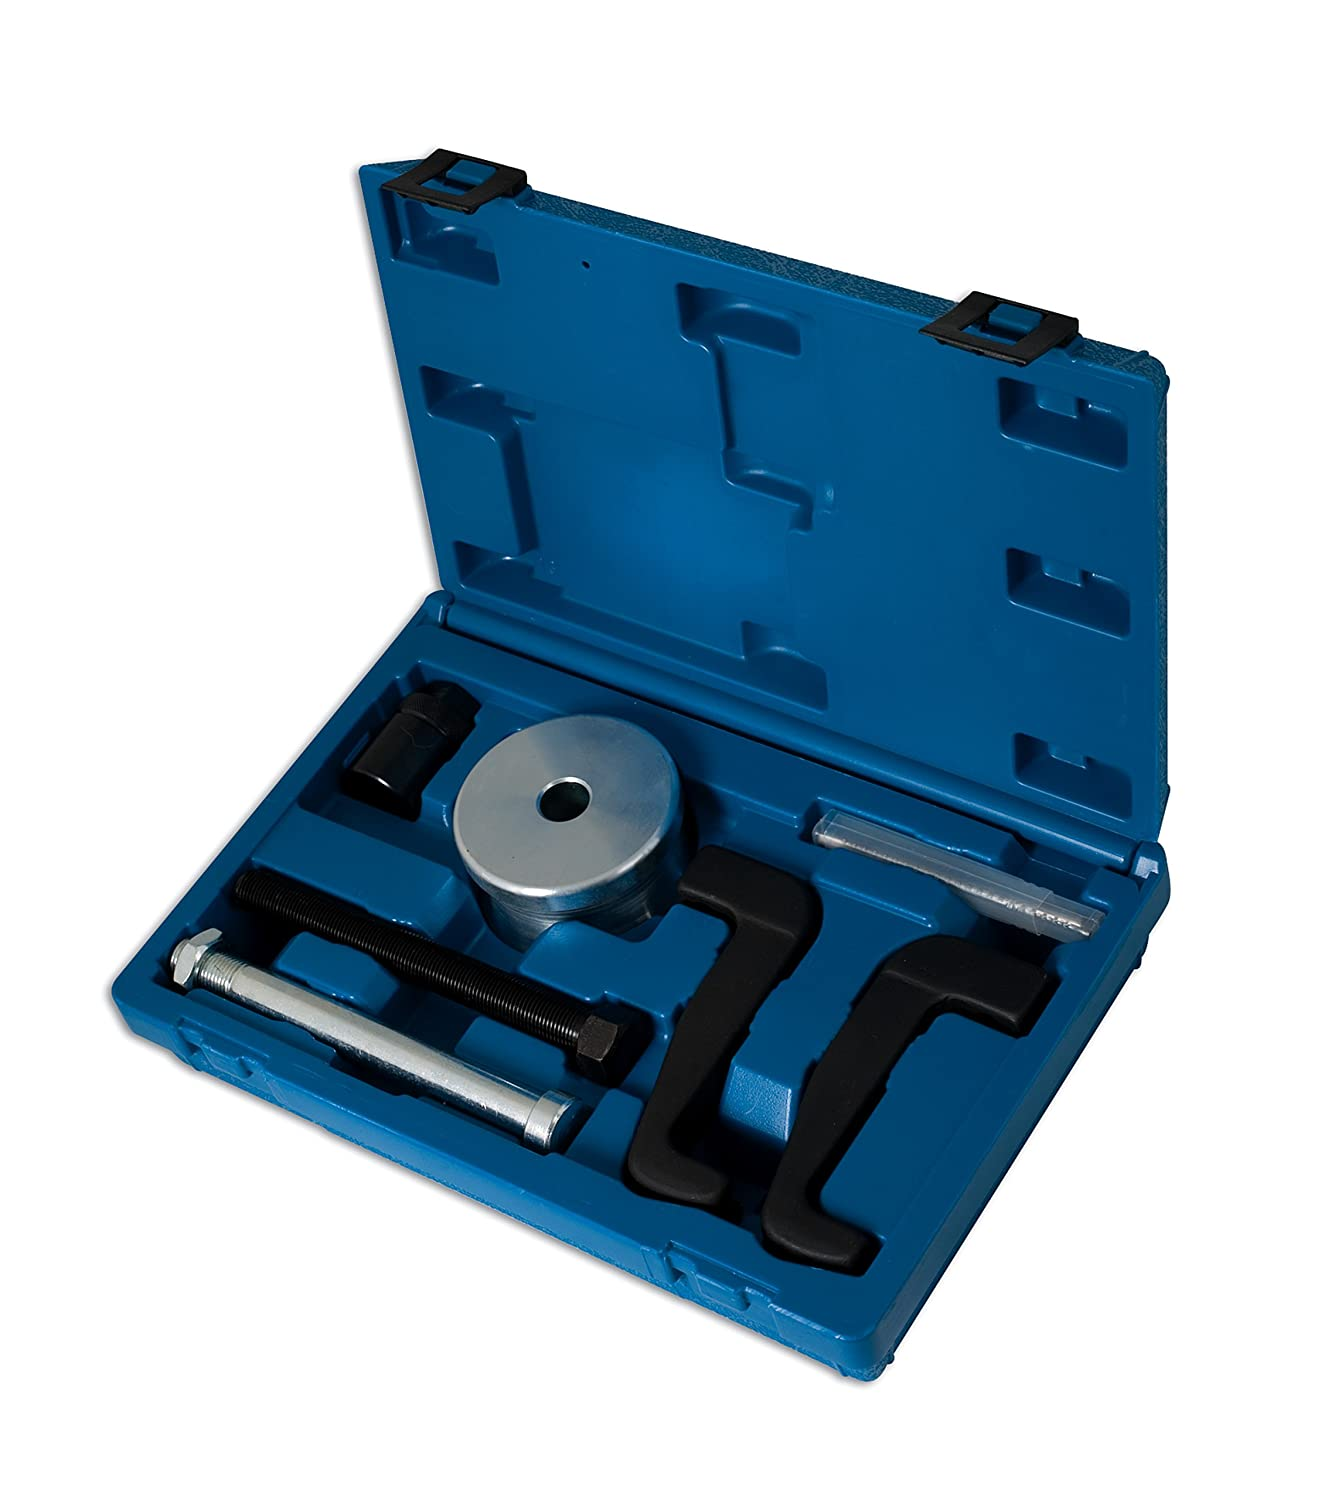 Laser 4335 Injector Puller Set The Tool Connection Ltd.